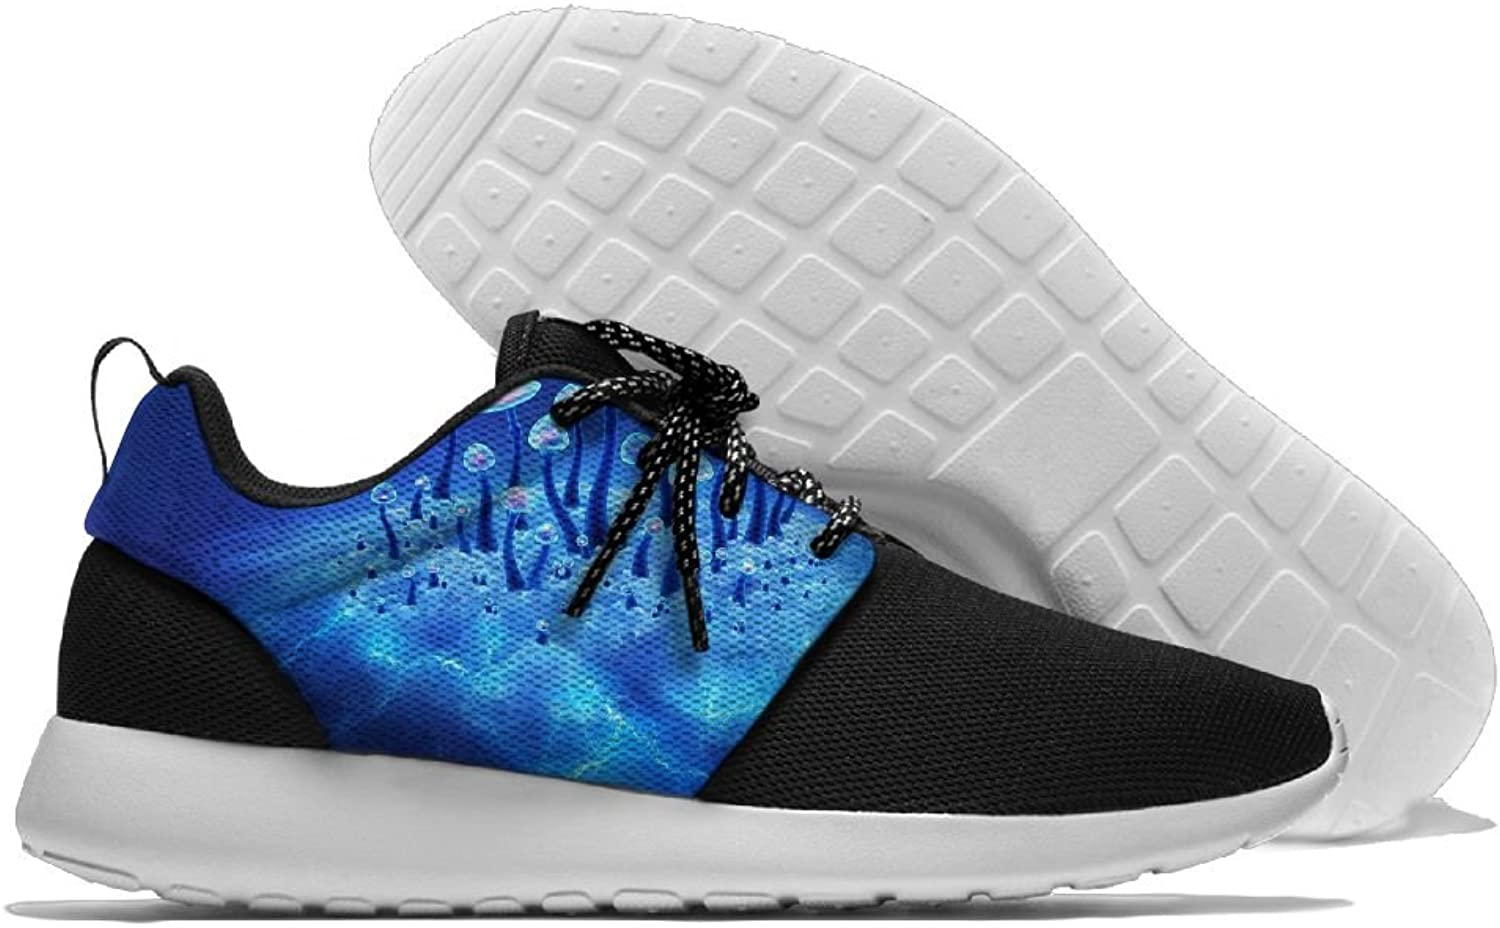 Sneakers Casual Running shoes Fantastic Mushroom bluee Lightweight Breathable Mesh Walking Men Women shoes For Sports Athletic Gym Travel